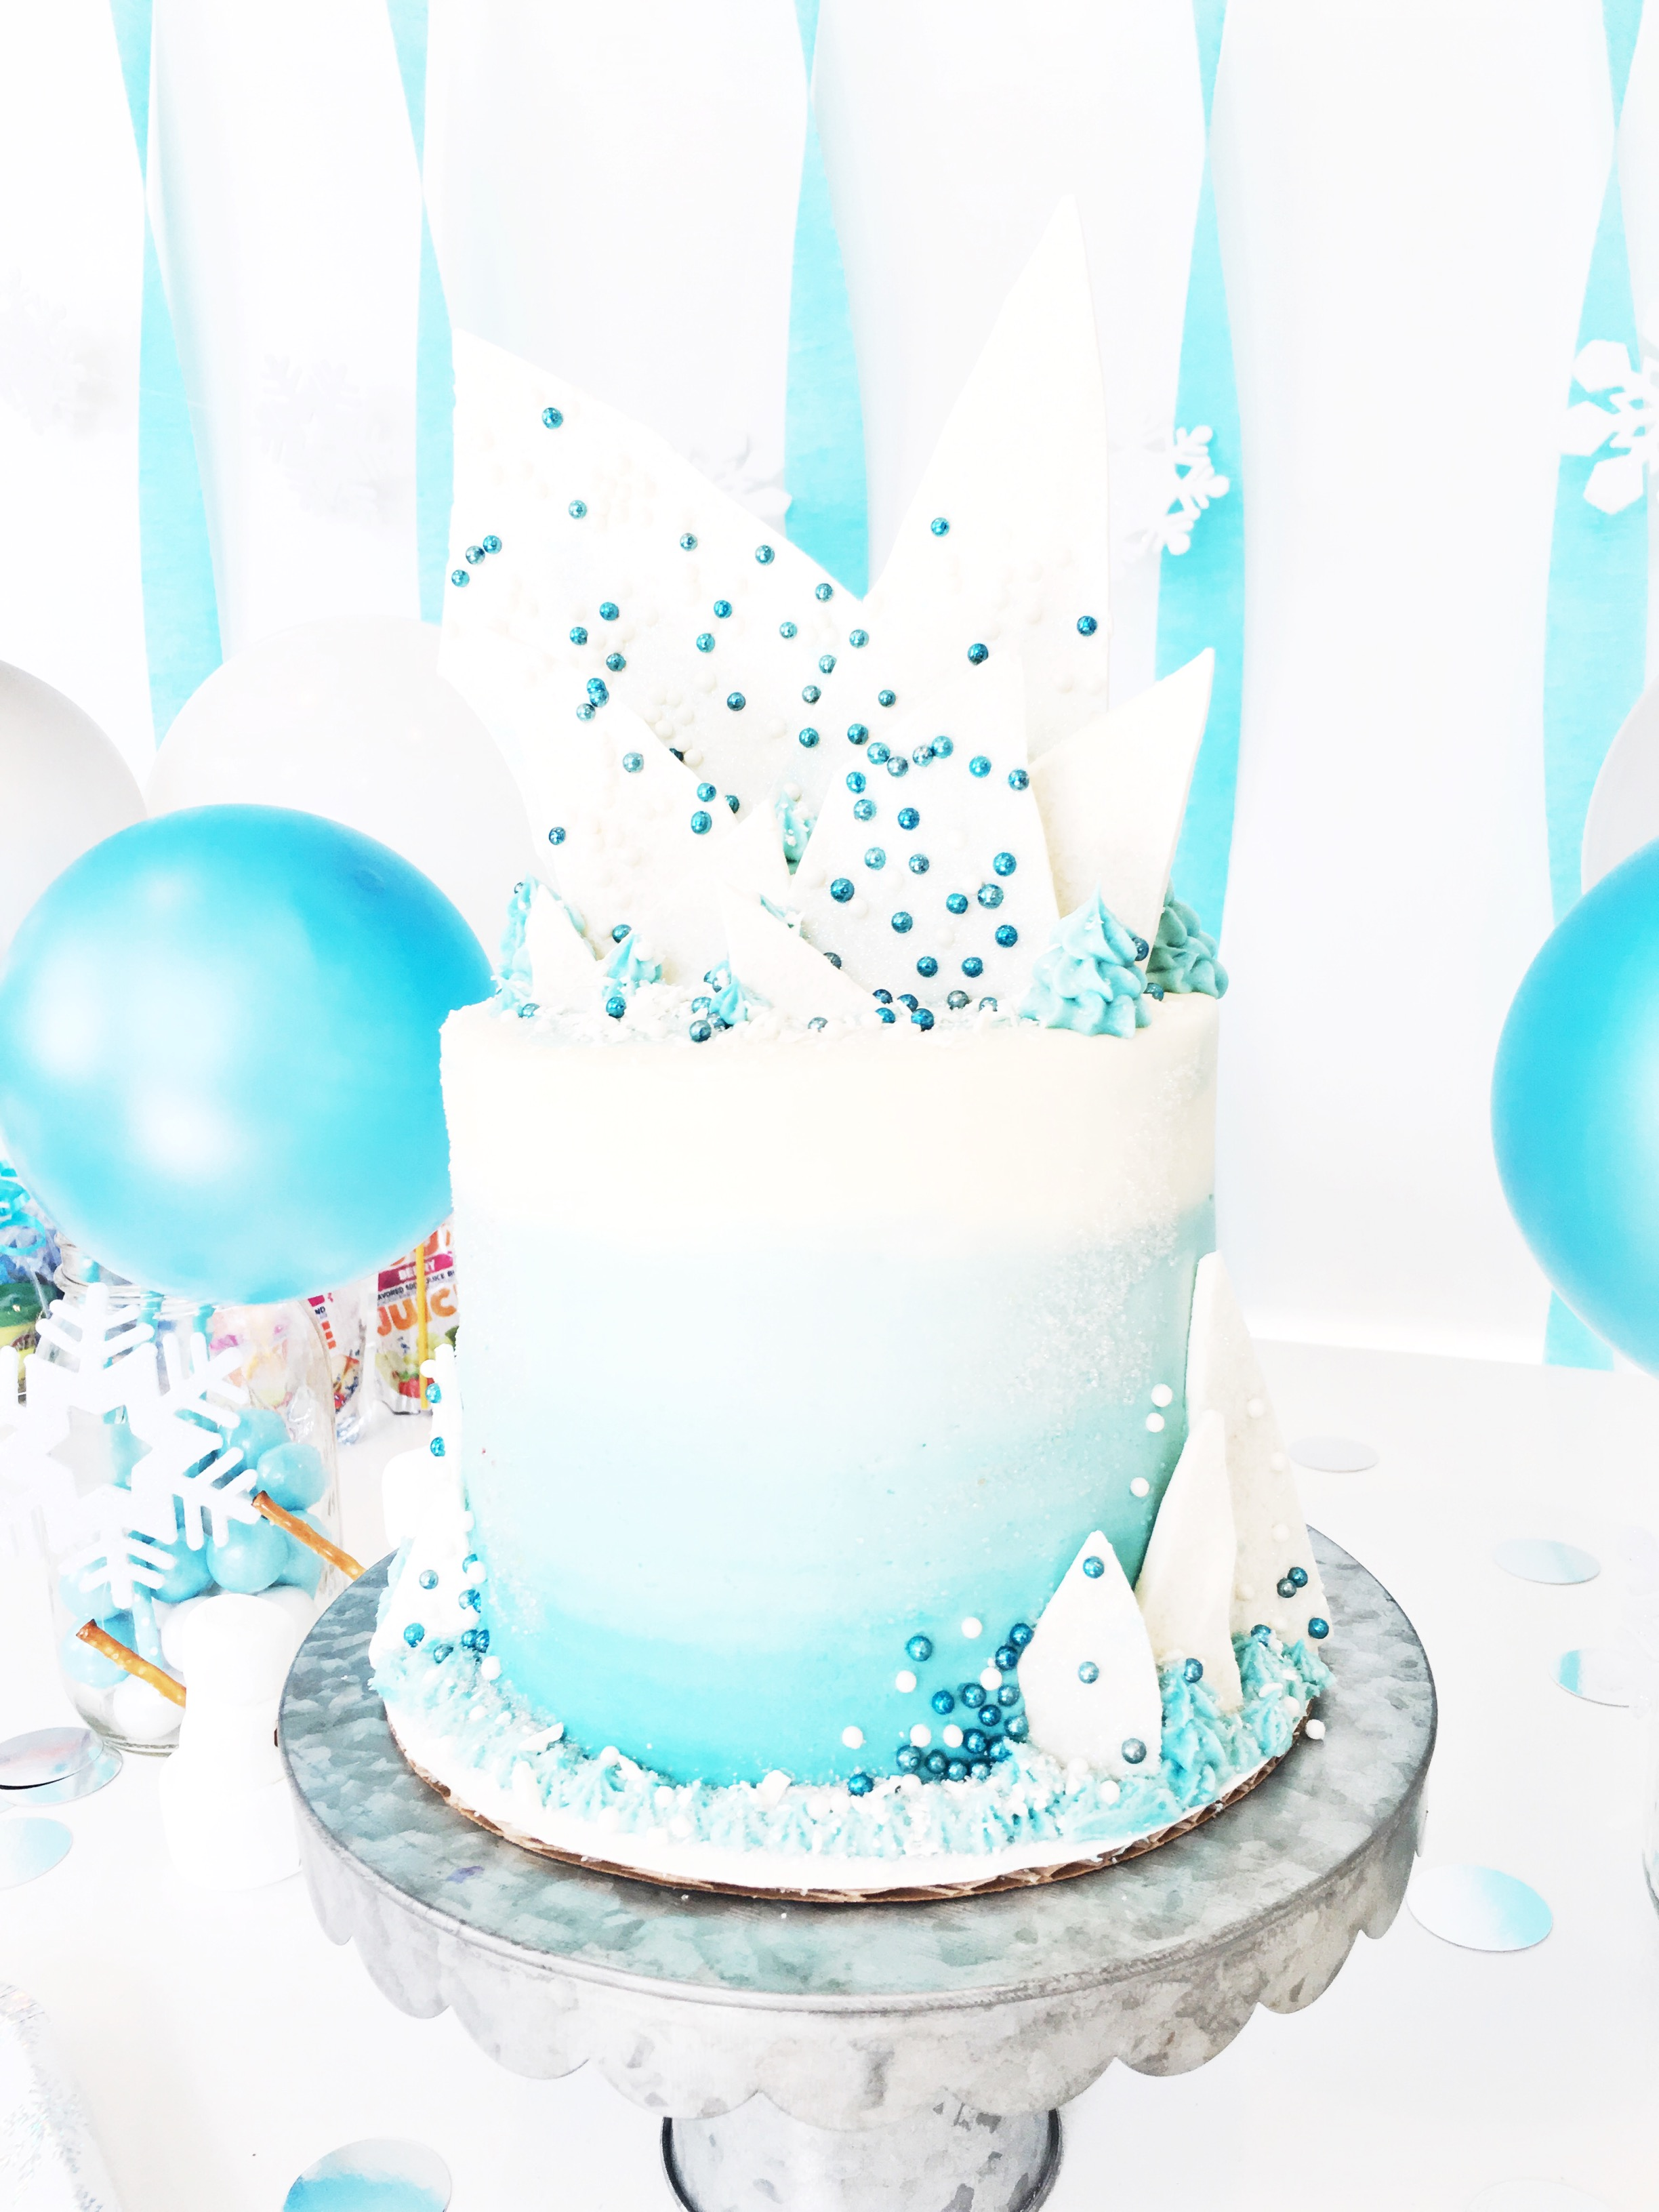 Averys Frozen Birthday Cake by Courtney